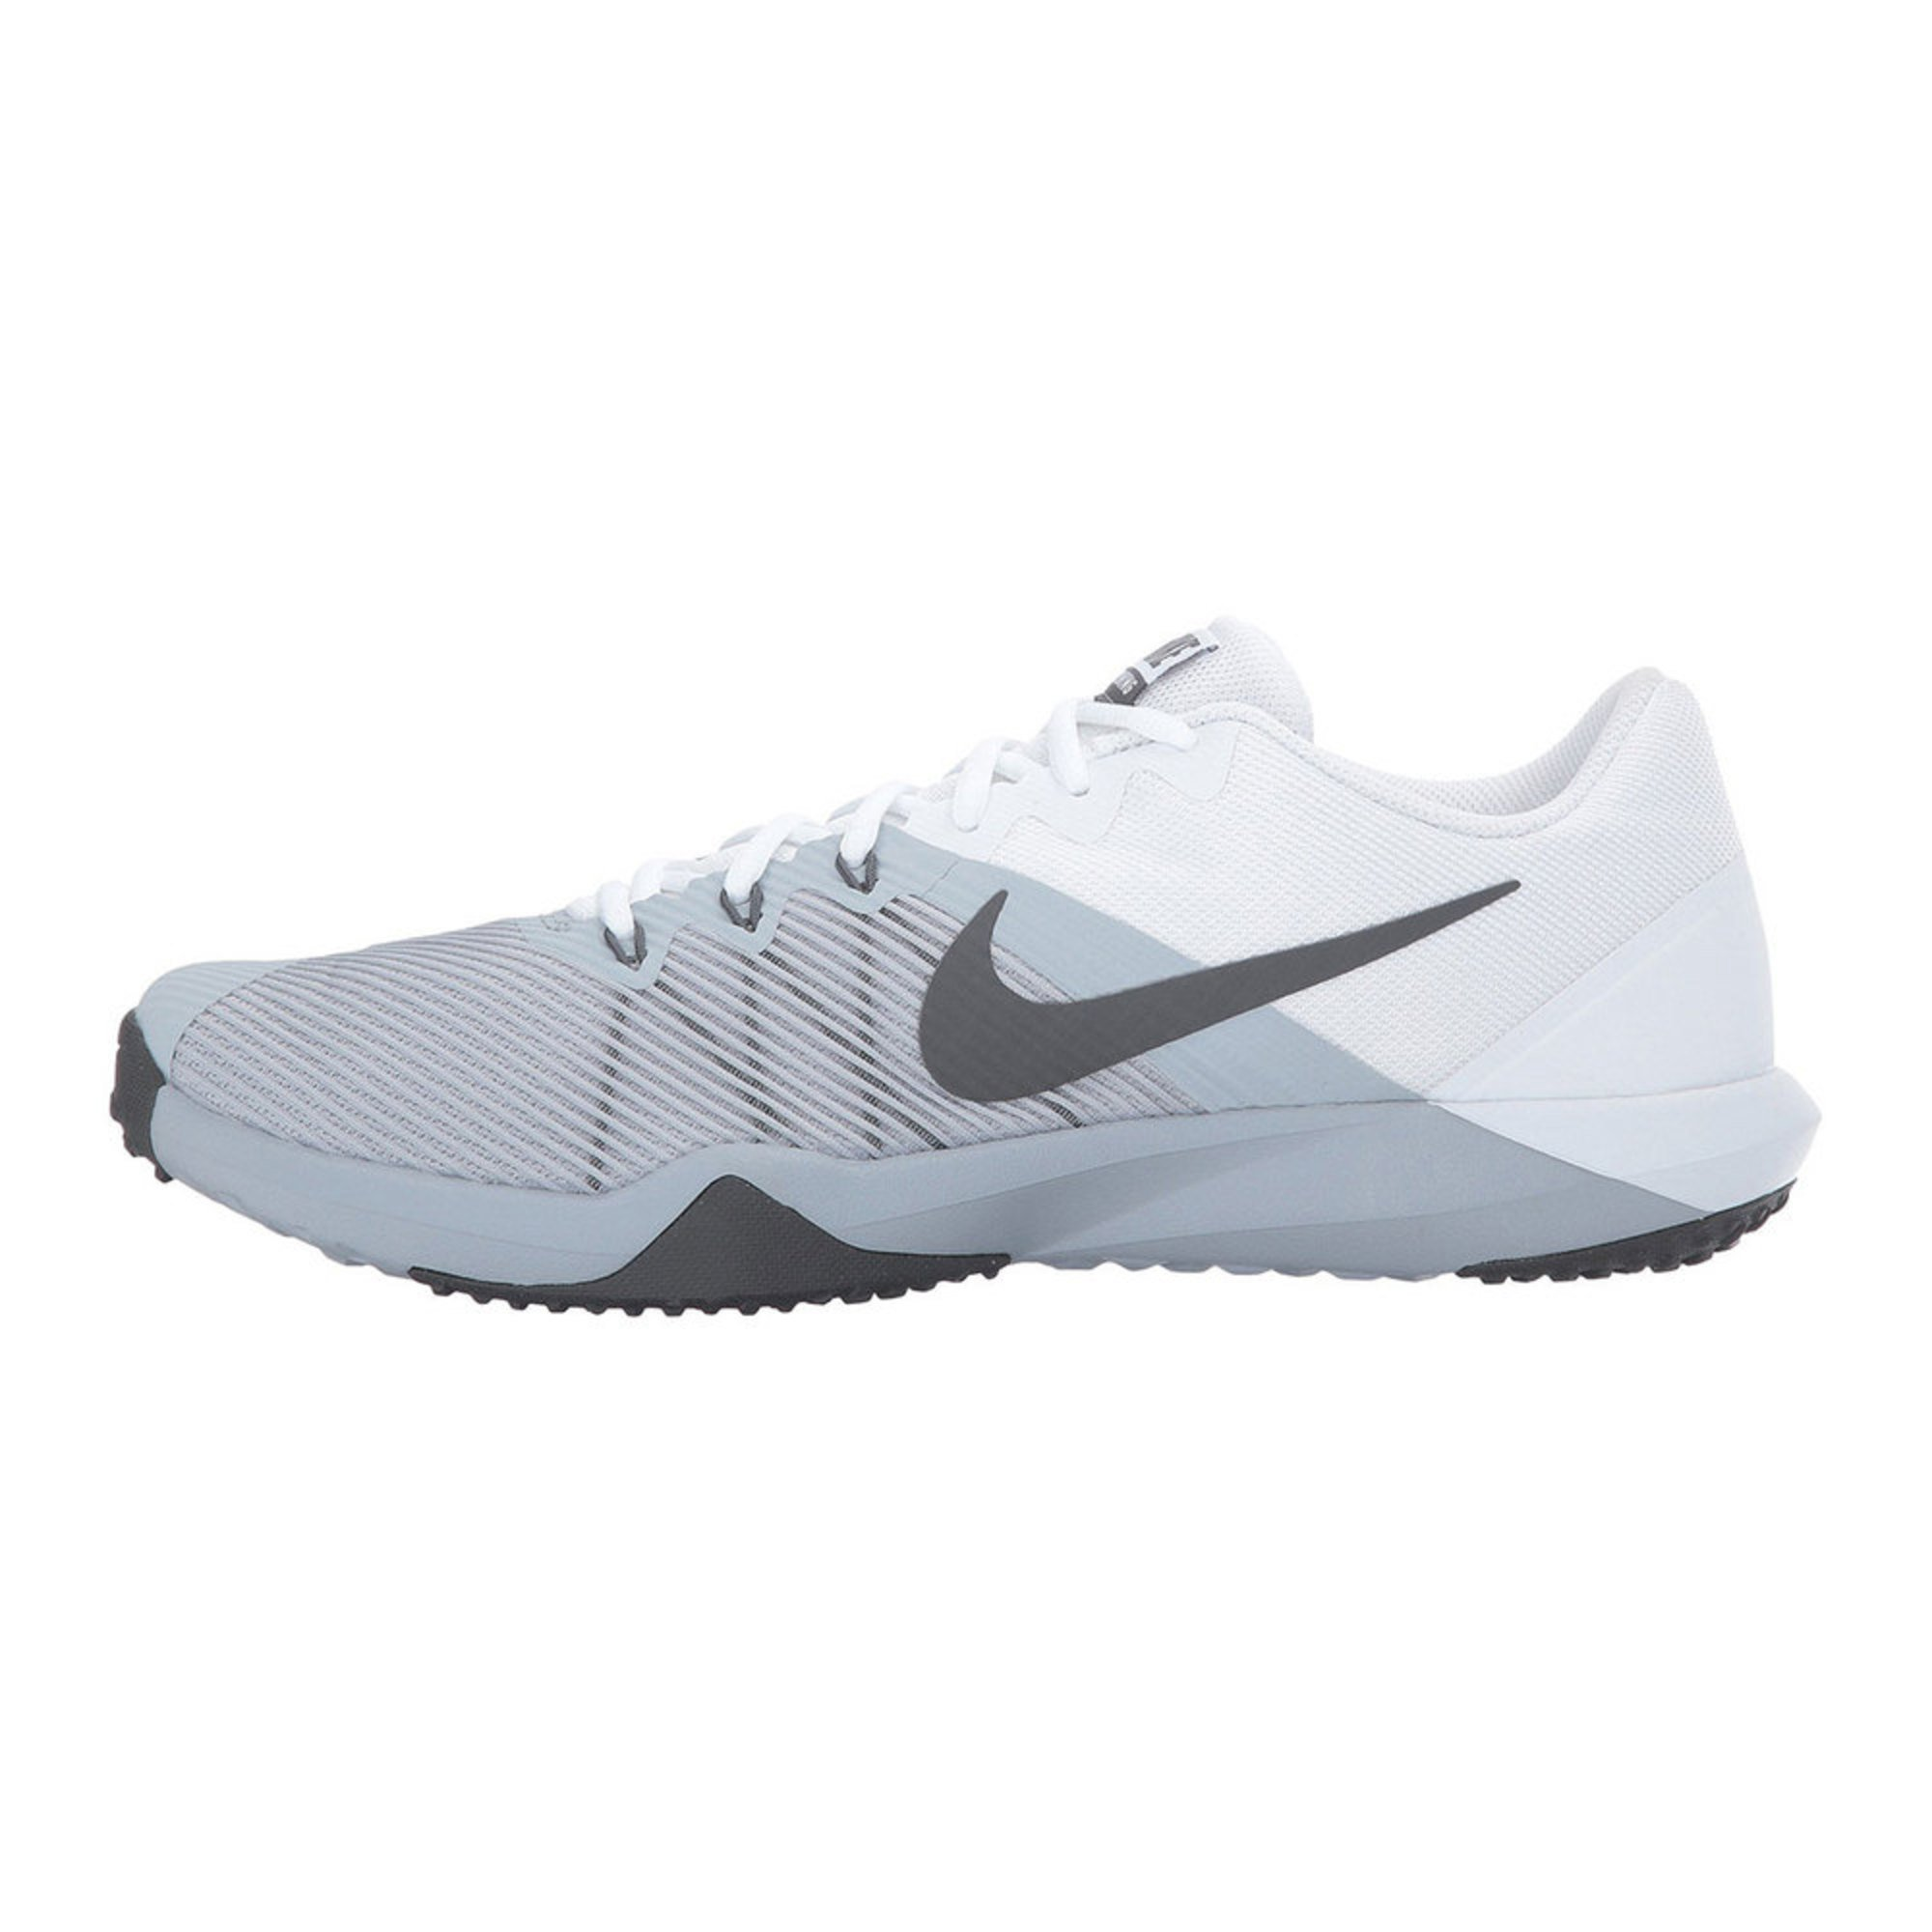 Nike. Nike Retaliation TR Men's Training Shoe - Wolf Grey ...